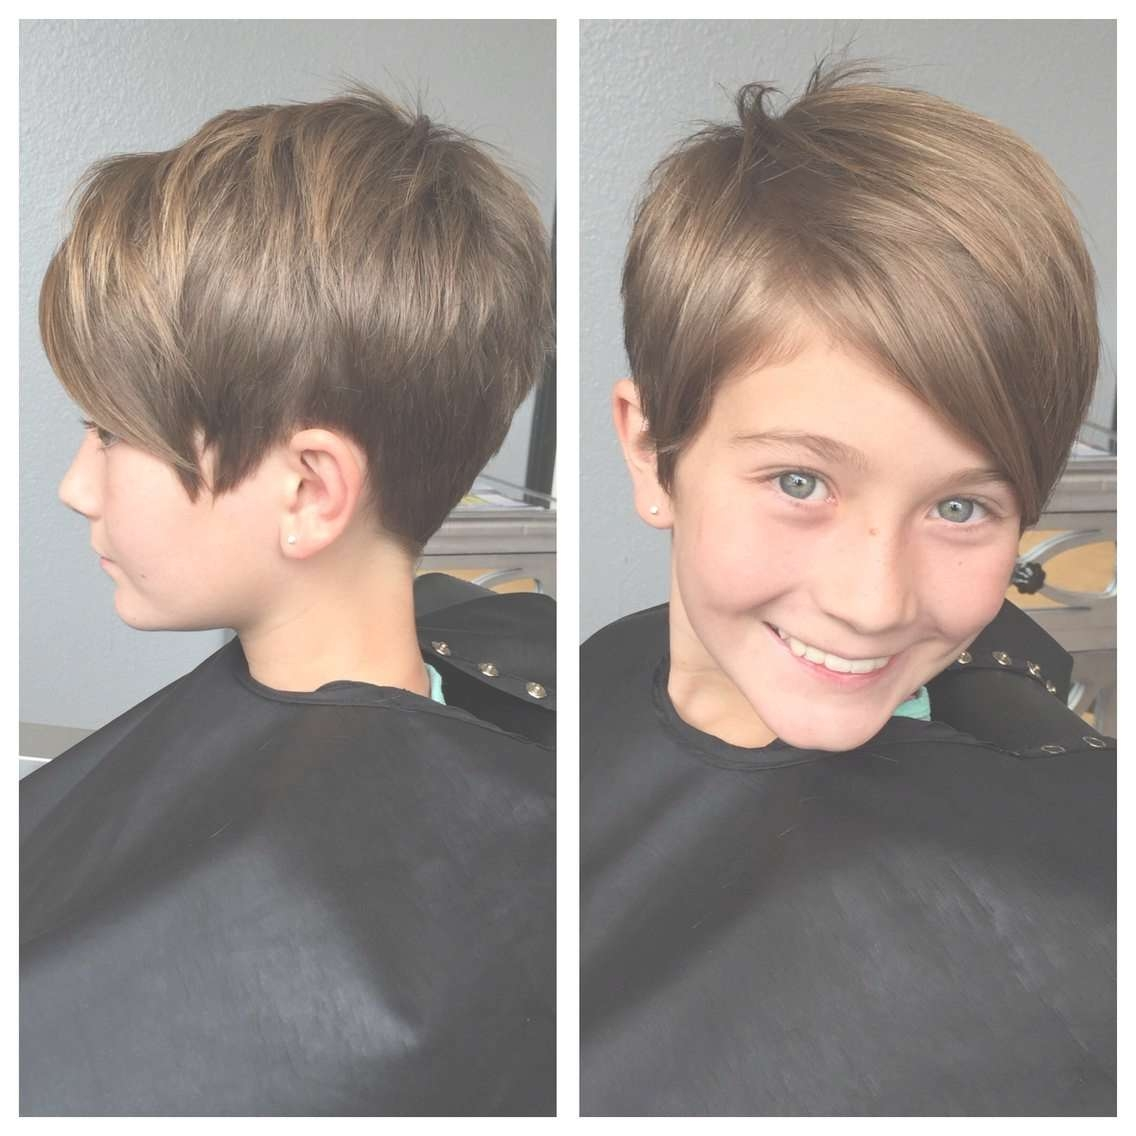 Kids Pixie Haircut   Hair   Pinterest   Pixie Haircut, Pixies And Regarding Most Recently Pixie Hairstyles For Little Girl (View 9 of 15)